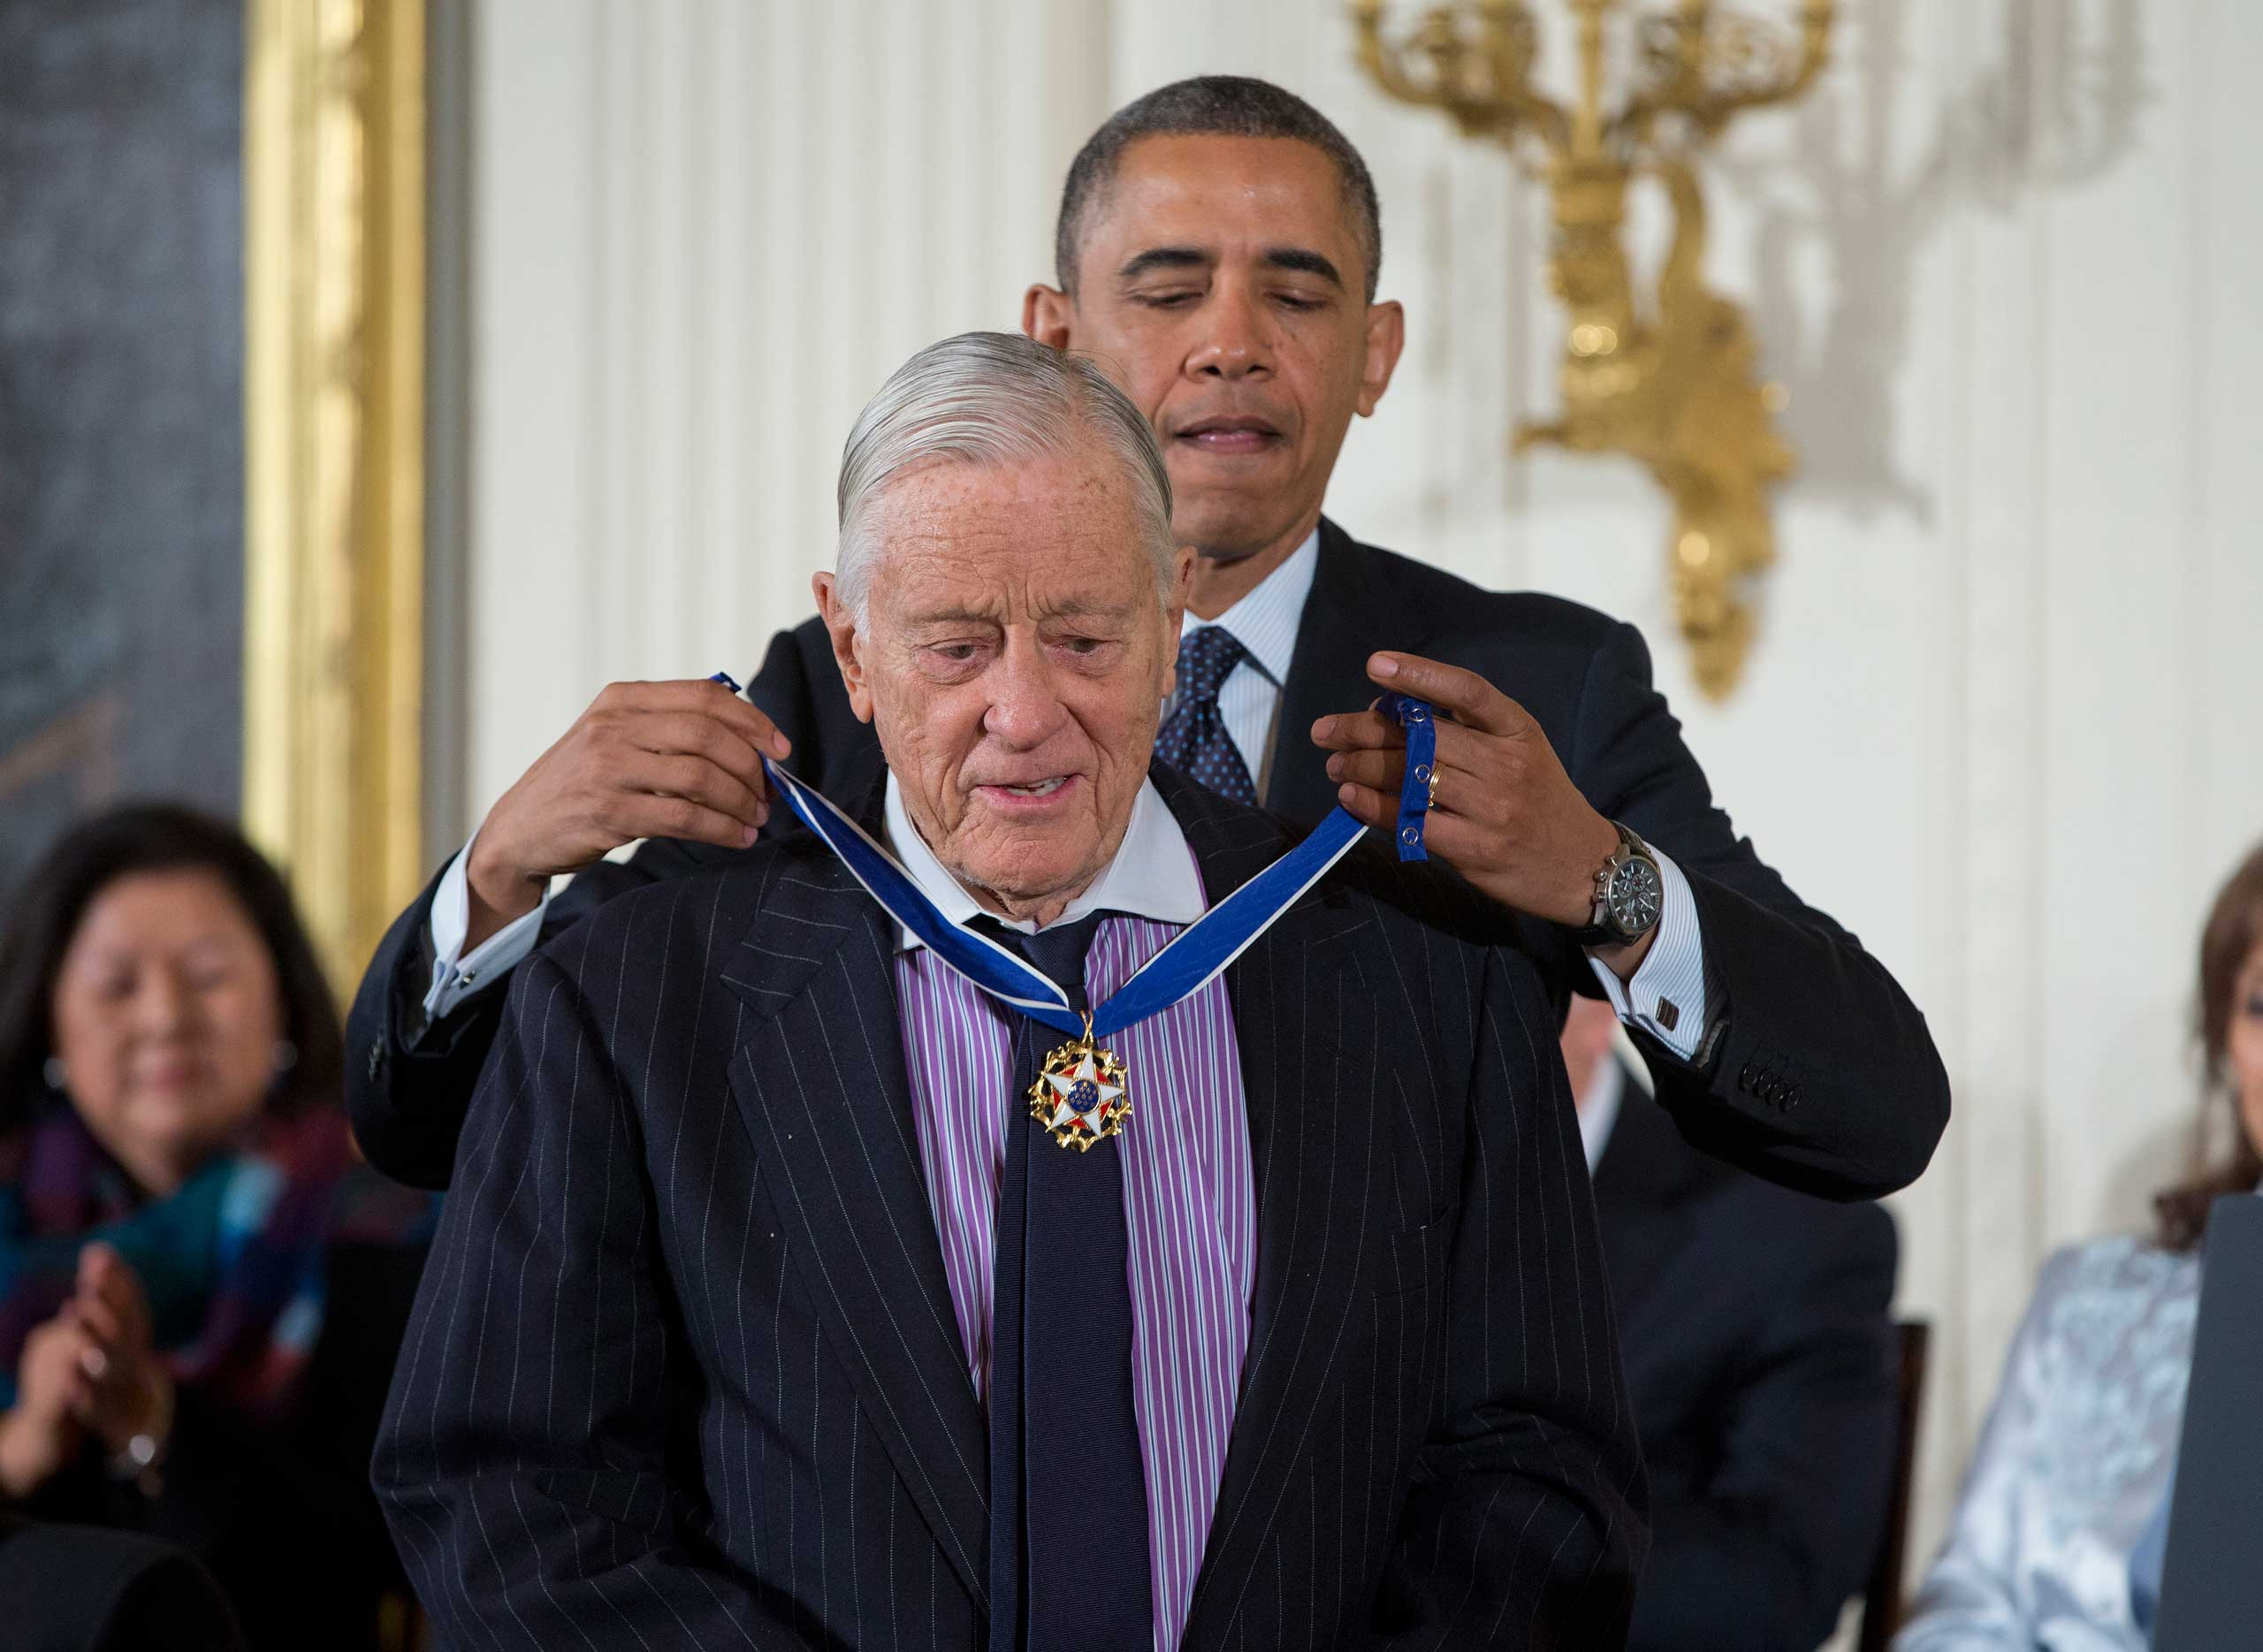 President Barack Obama awards Benjamin Bradlee with the Presidential Medal of Freedom on Nov. 20, 2013 during a ceremony in the East Room of the White House in Washington, D.C.